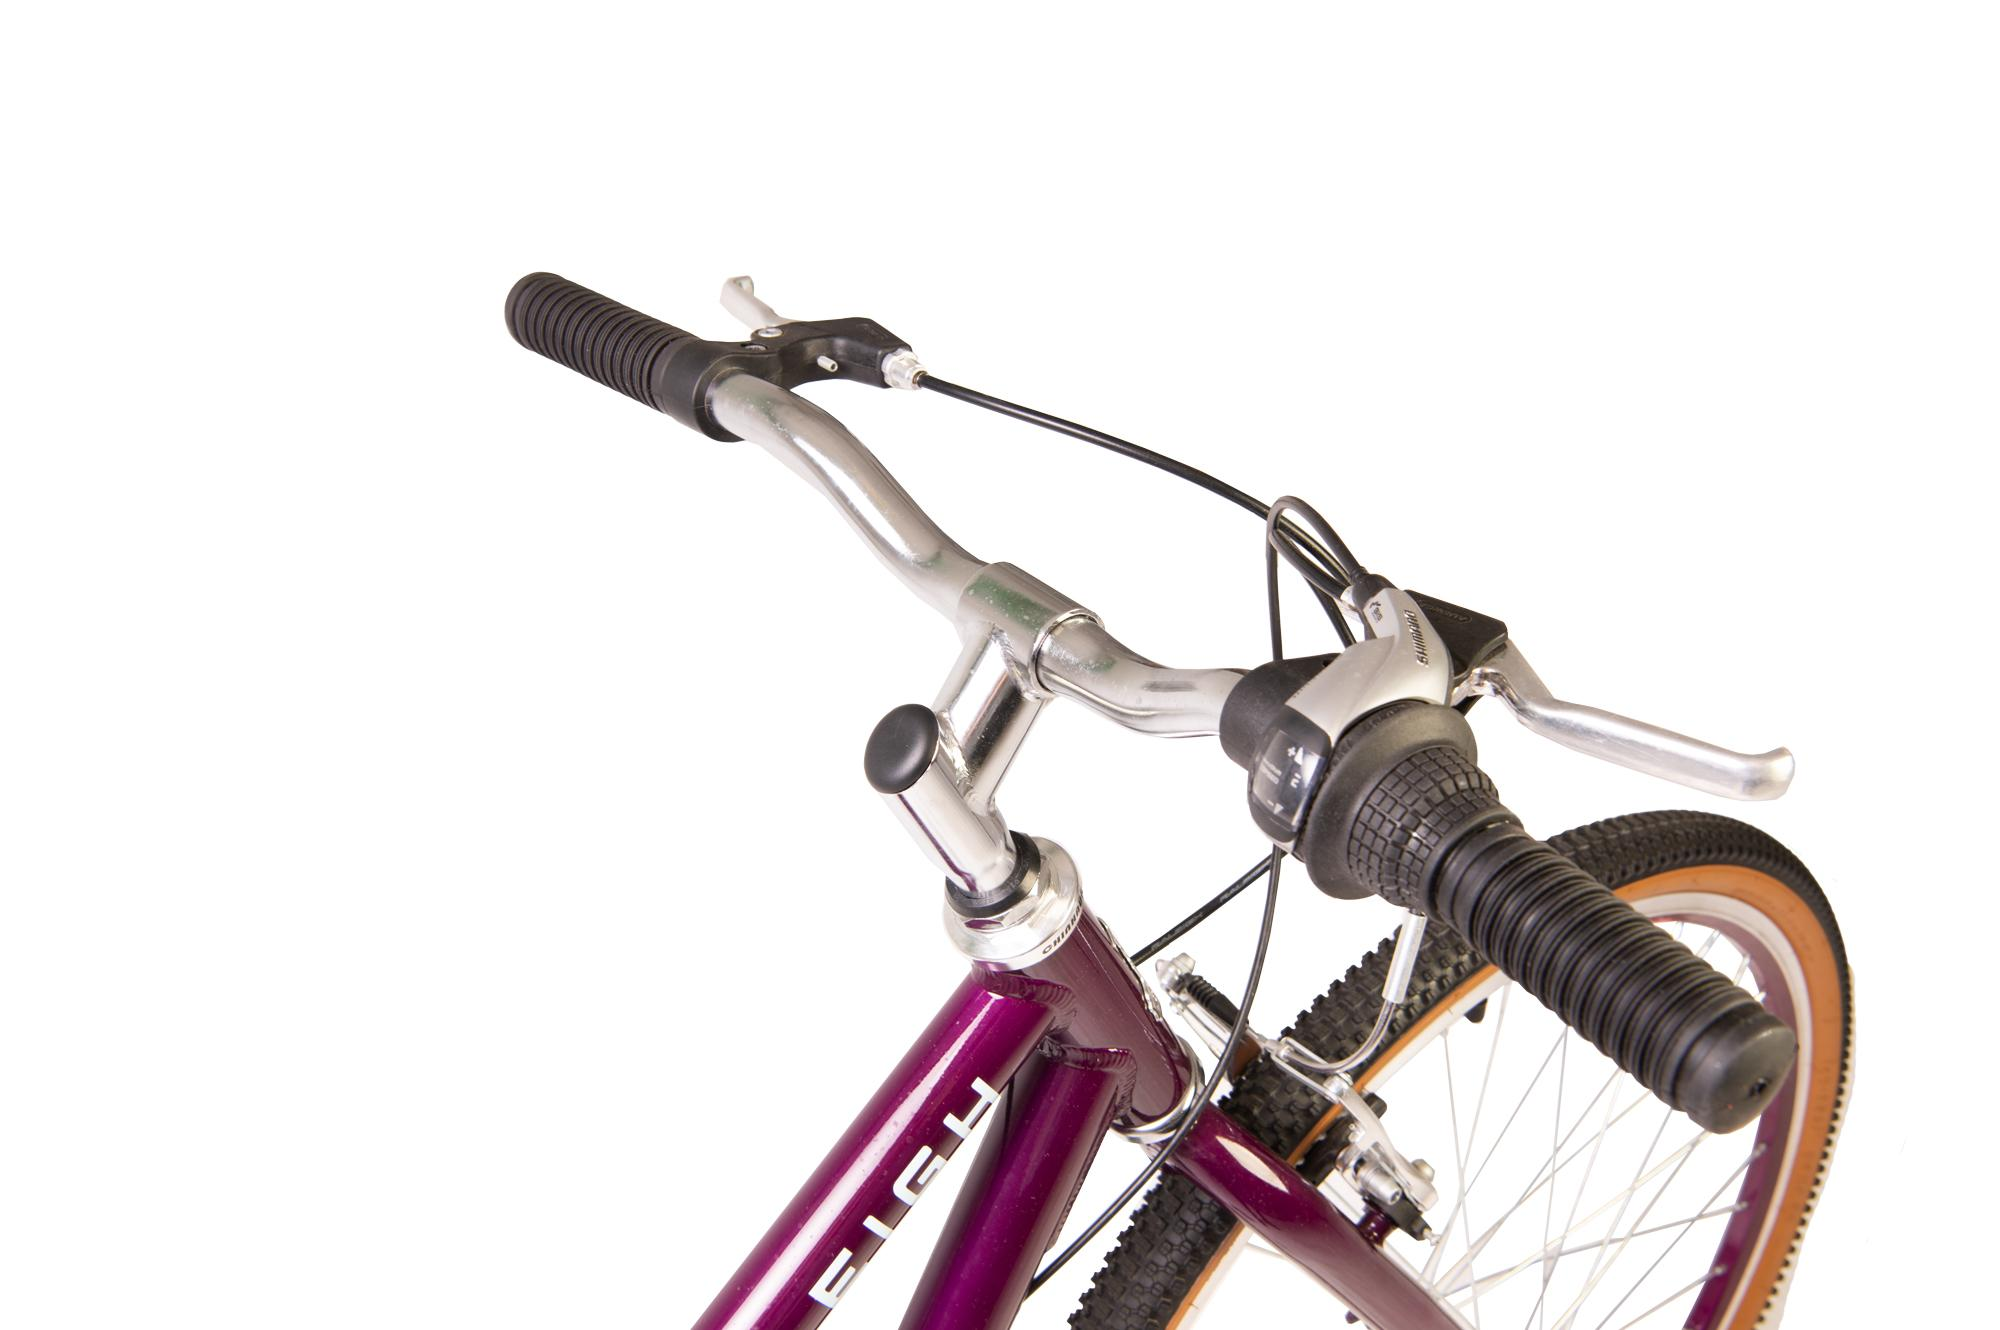 Handlebars on the Raleigh Pop 26 inch kids bike in colour purple